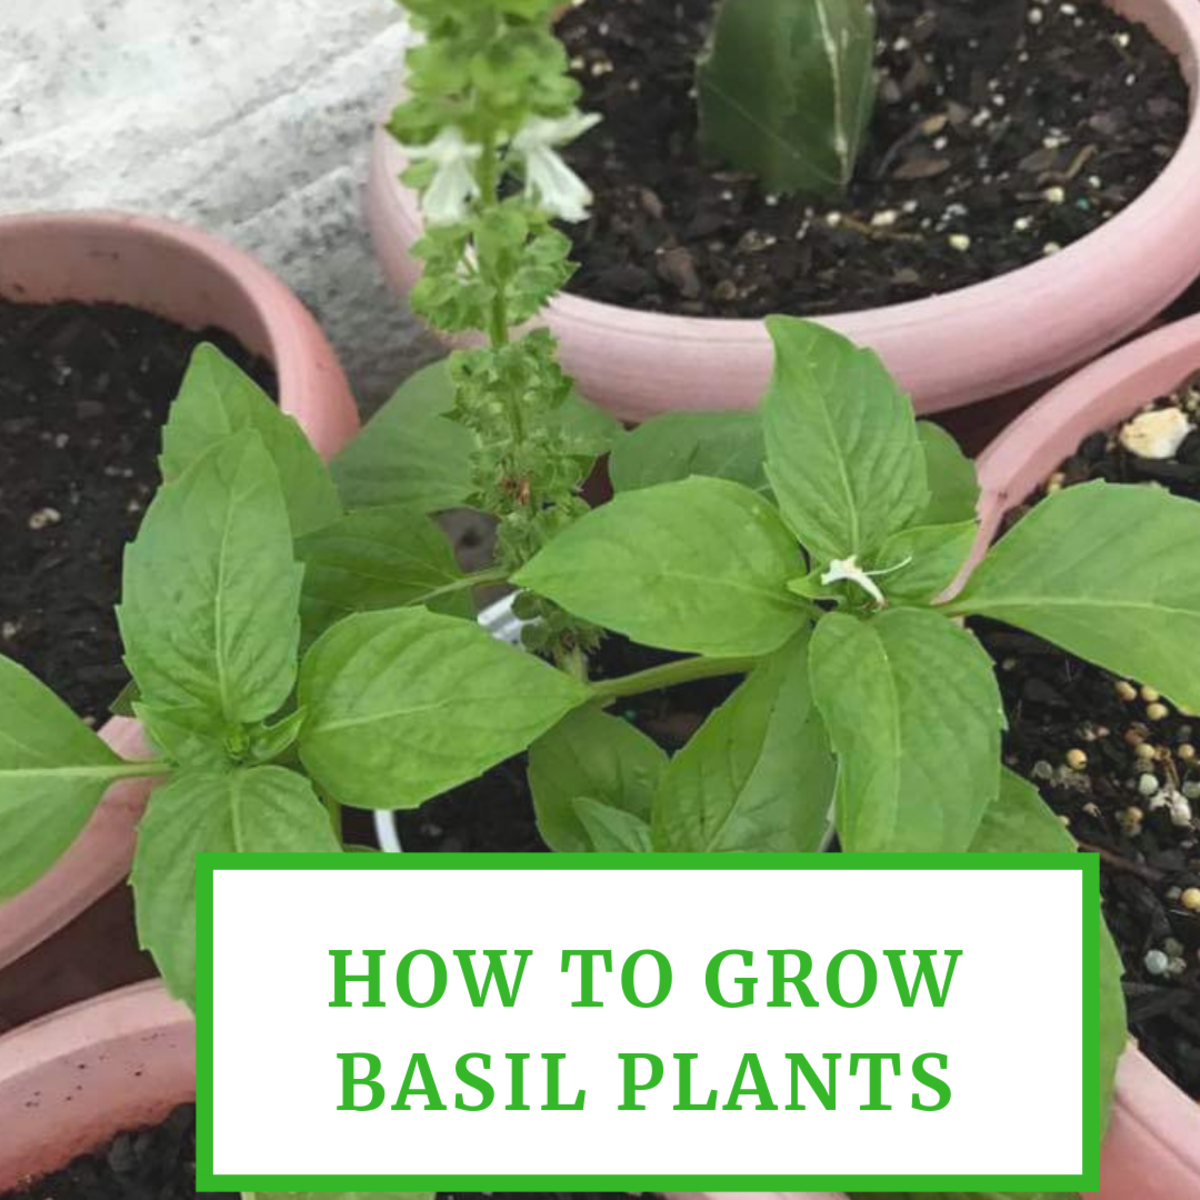 How to Grow Basil Plants in Your Garden